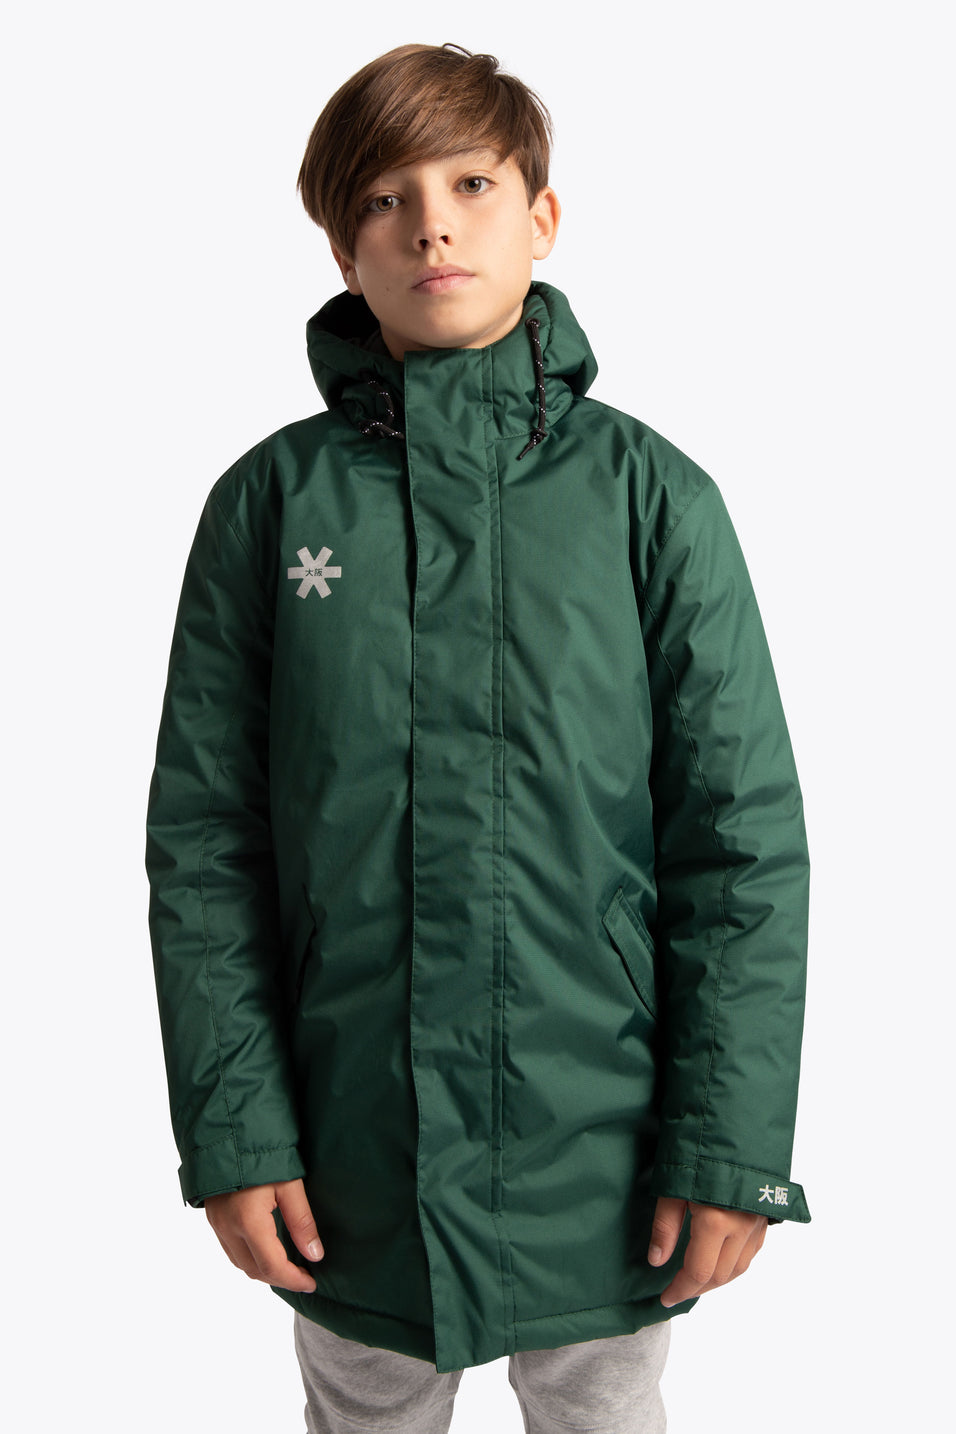 Osaka kid jacket green